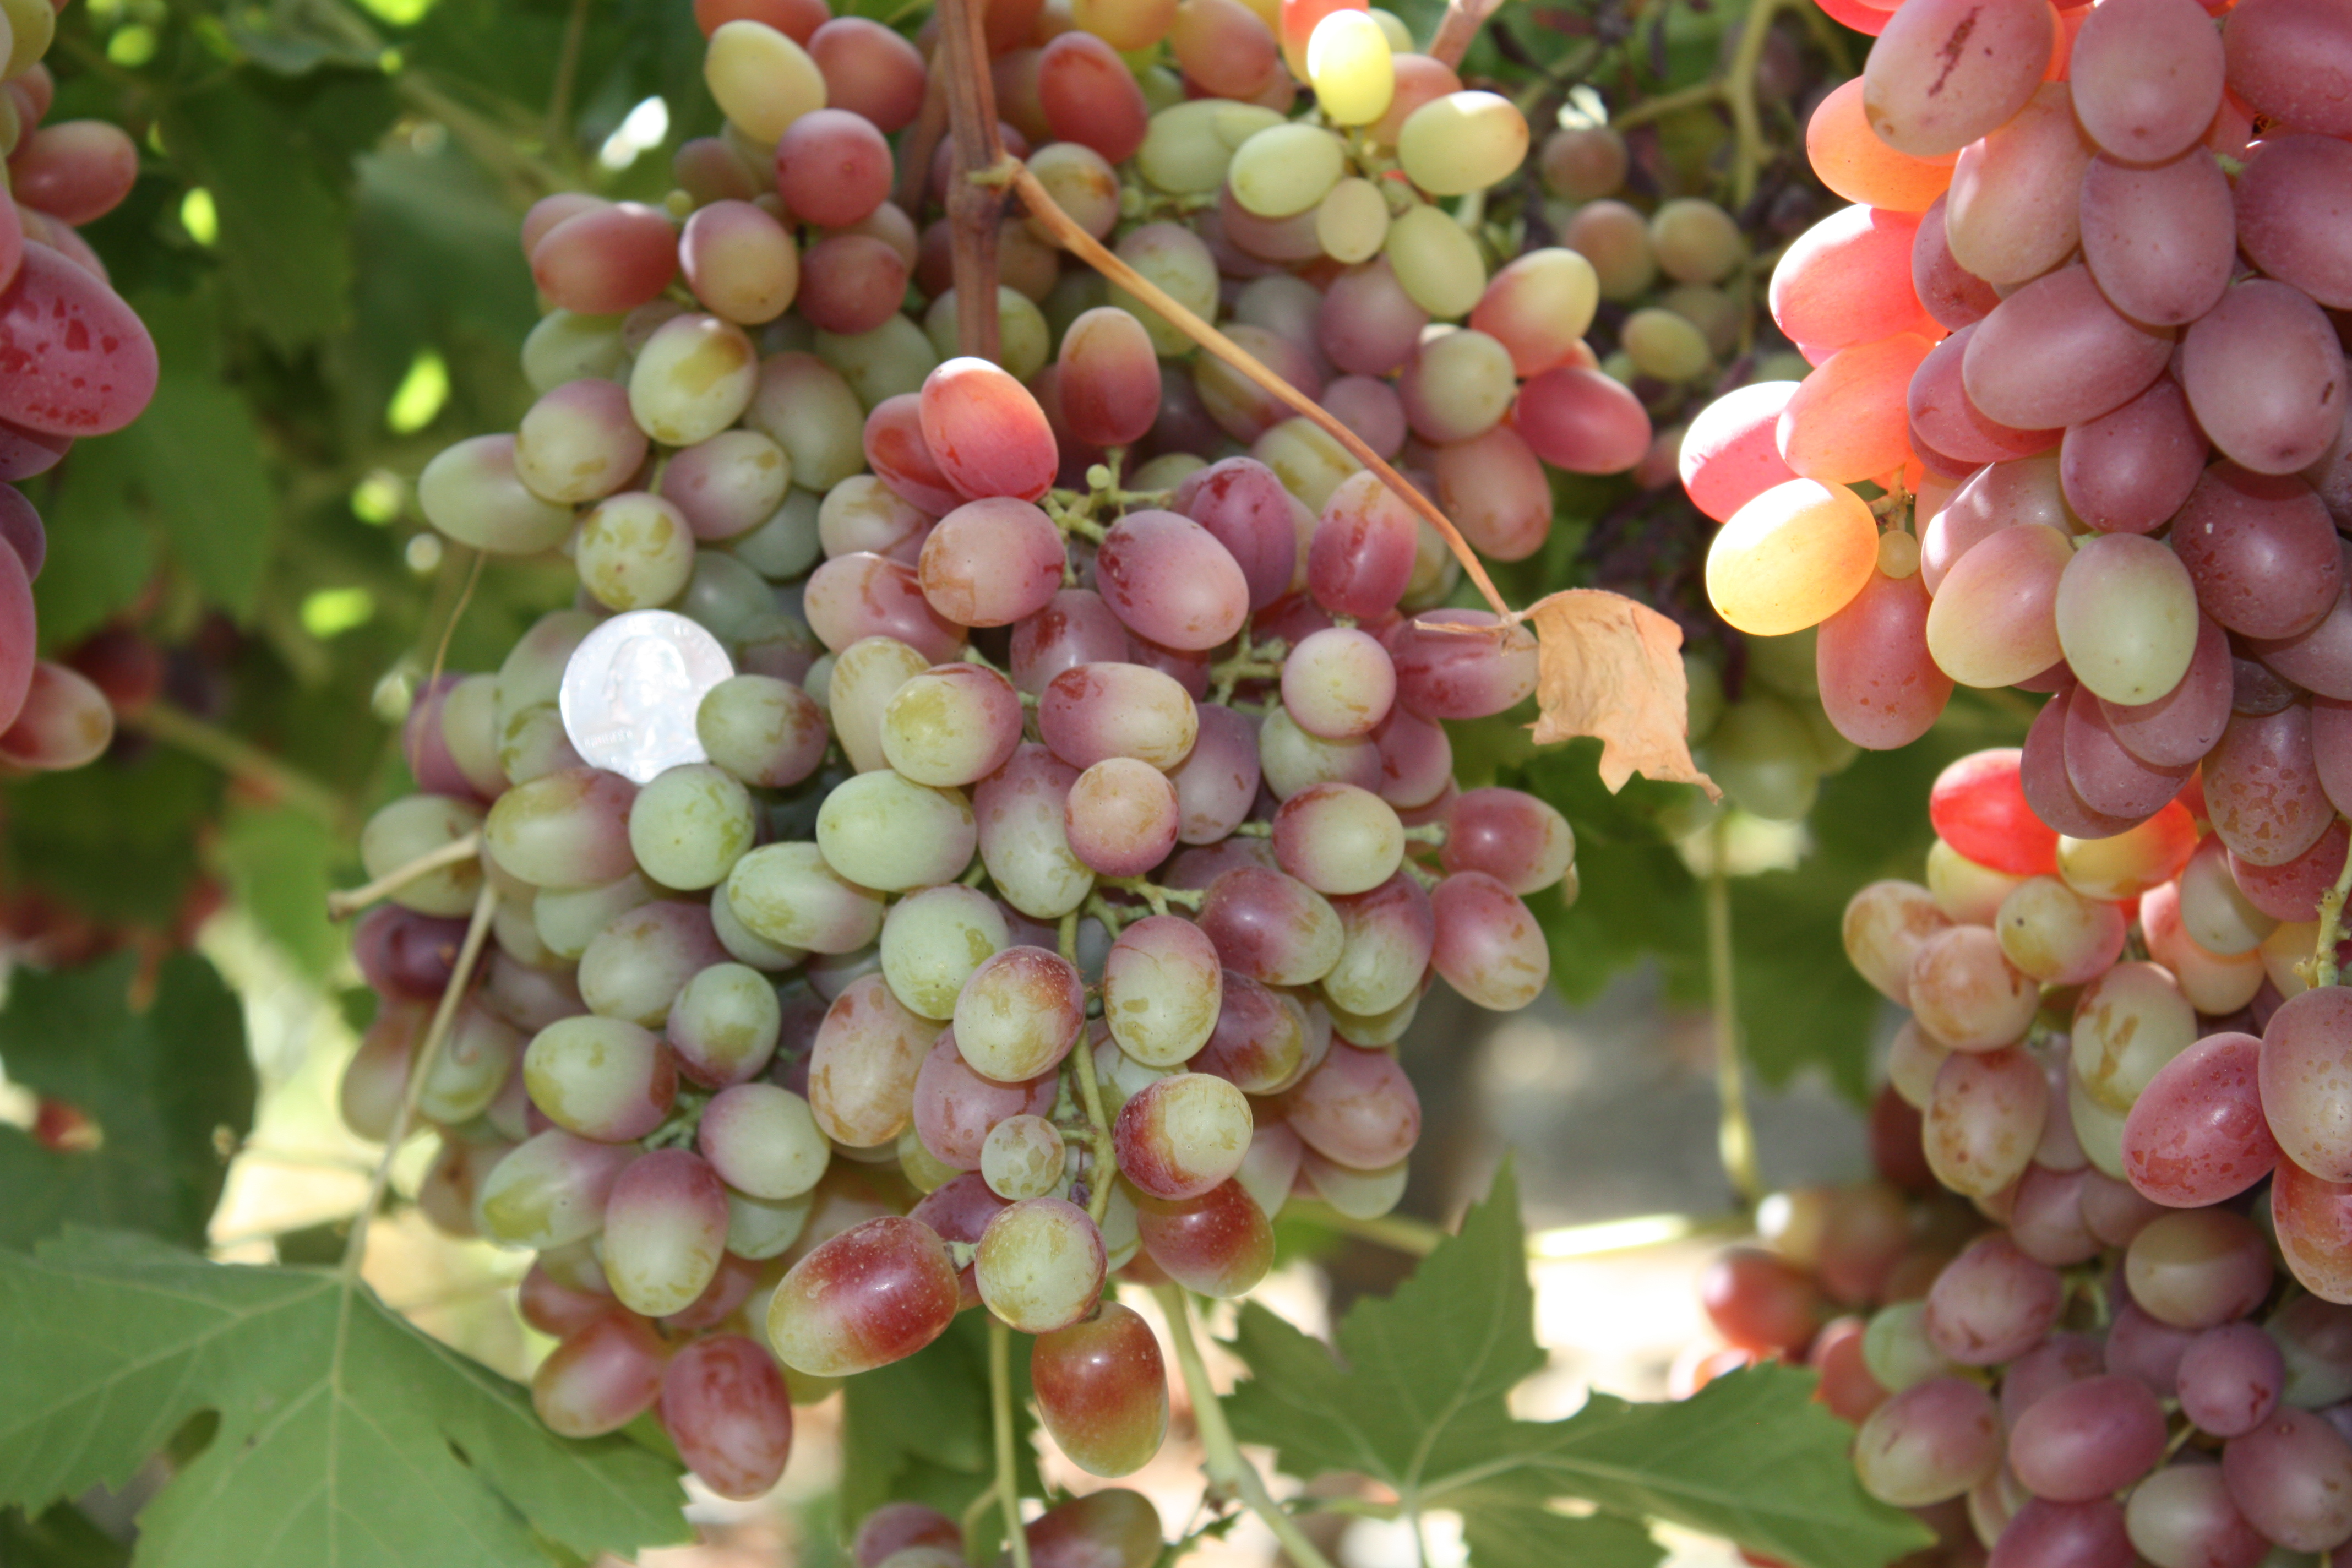 Drought-stressed grapes have variable coloring, rather than a uniform deep red. And they're smaller than the shiny quarter -- a common test of grape quality.